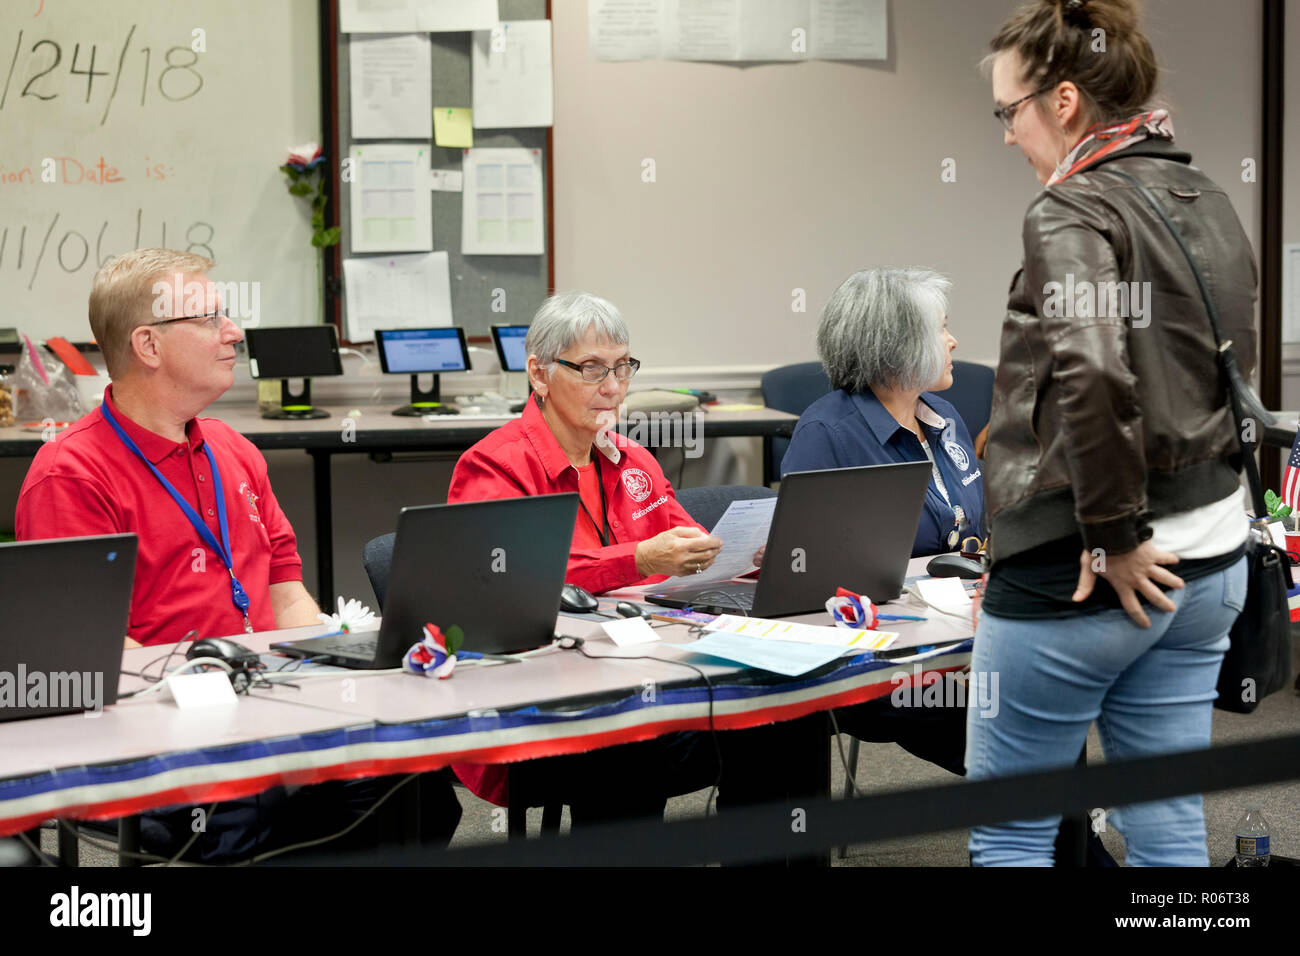 Woman waits to receive ballot while midterm poll worker (election officer) verifies identity of voter during 2018 midterm elections - Virginia USA - Stock Image